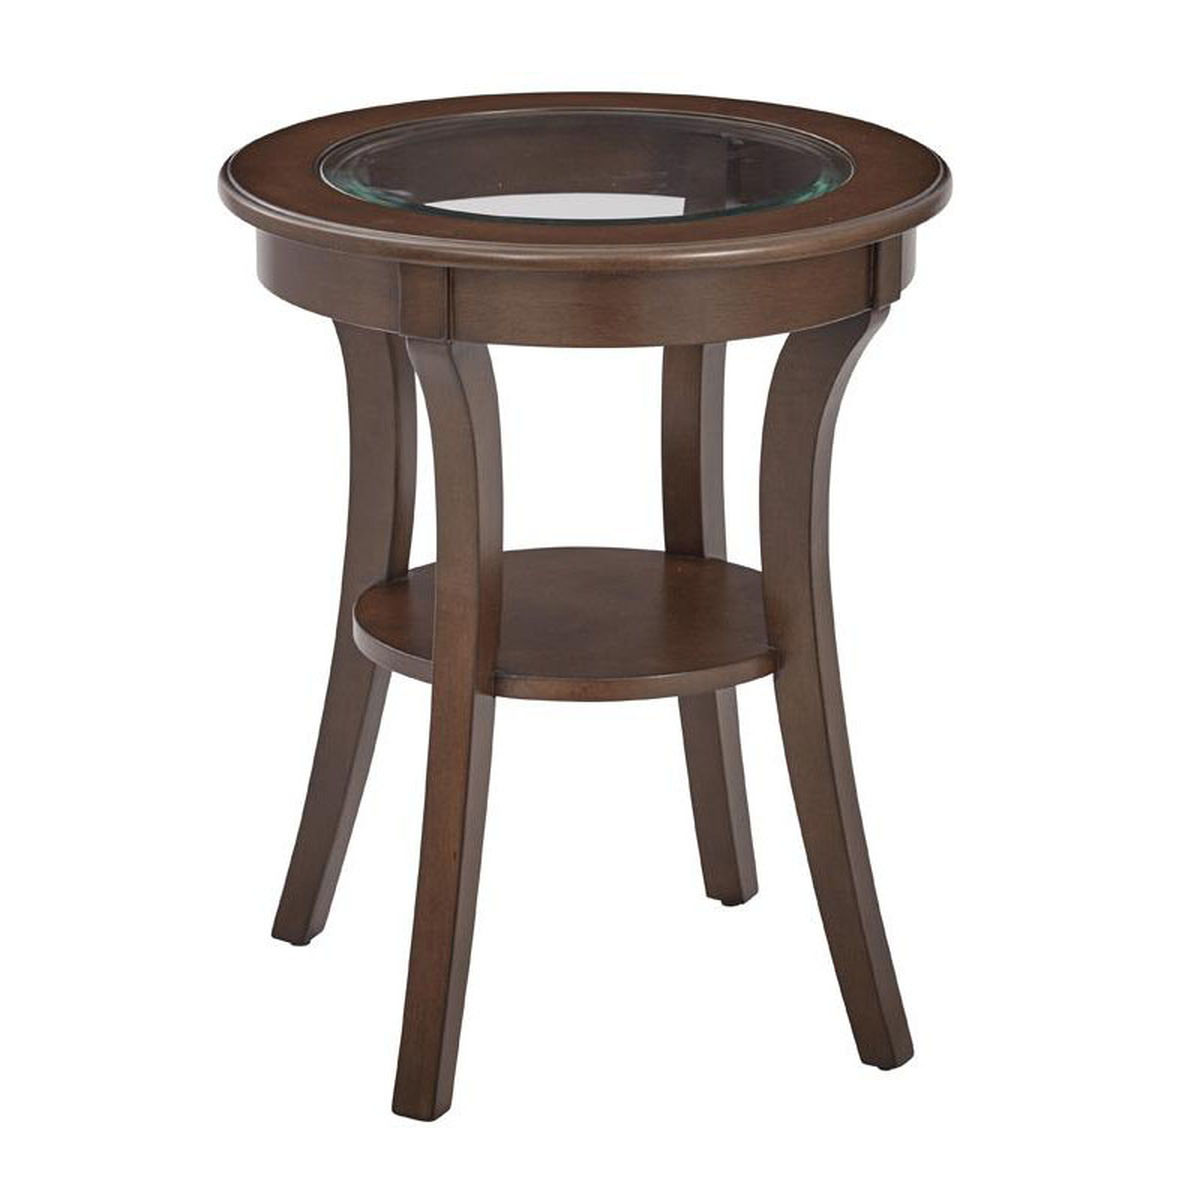 harper macchiato glass accent table bizchair office star products main stained our osp designs round top with wood finish and shelf lazy susan small antique oak tory burch pearl